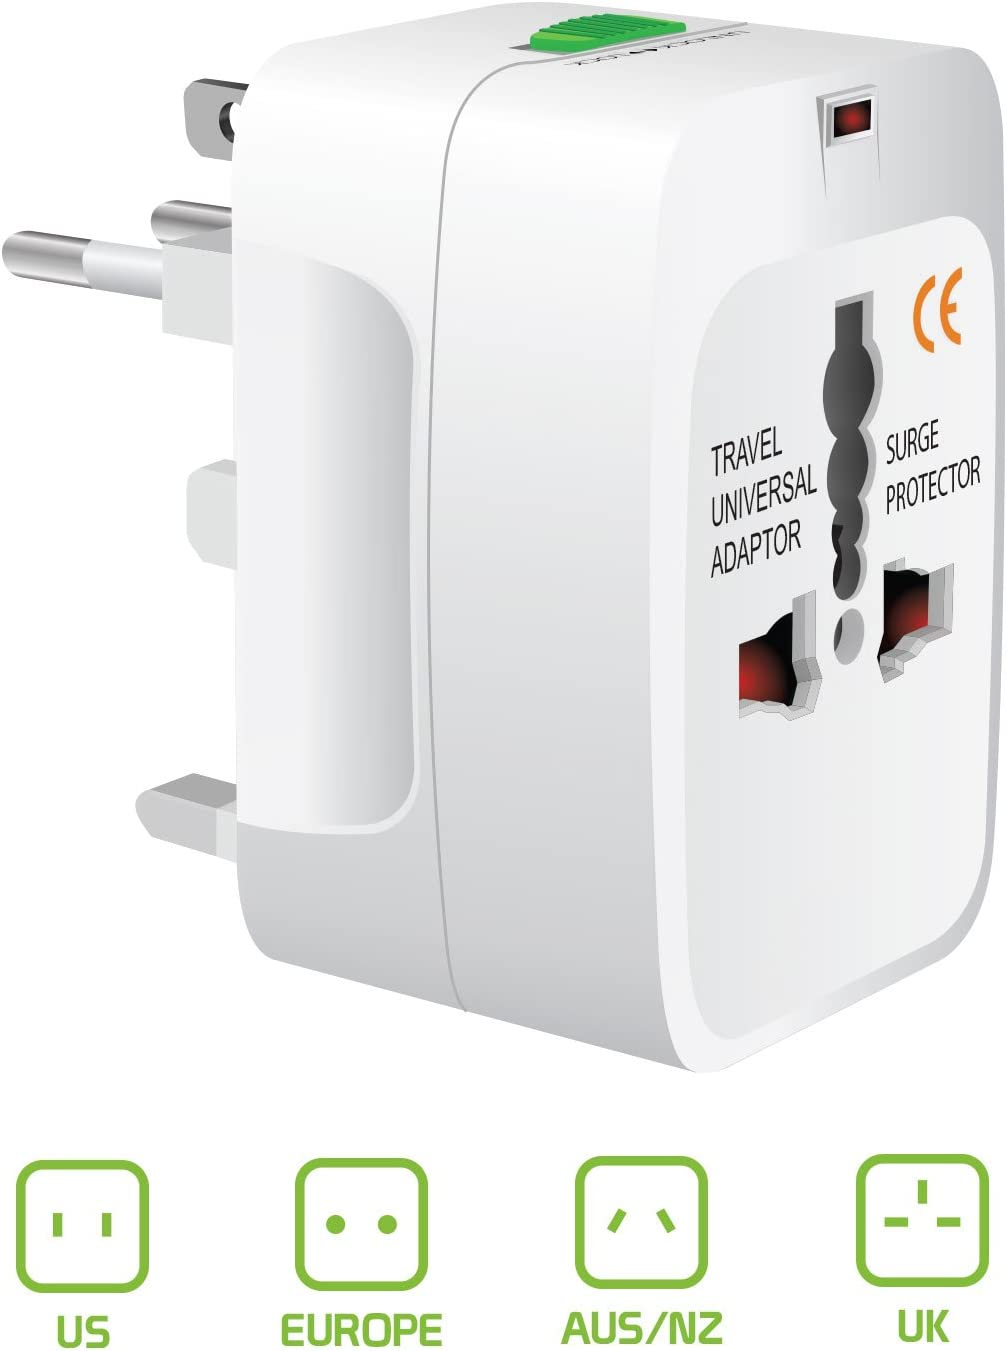 Cellet Portable Worldwide Universal Power Adapter Converter, All in One International Out of Country Travel Wall Charger Plug Compatible with USA, EU, UK, and AUS and More Outlets.